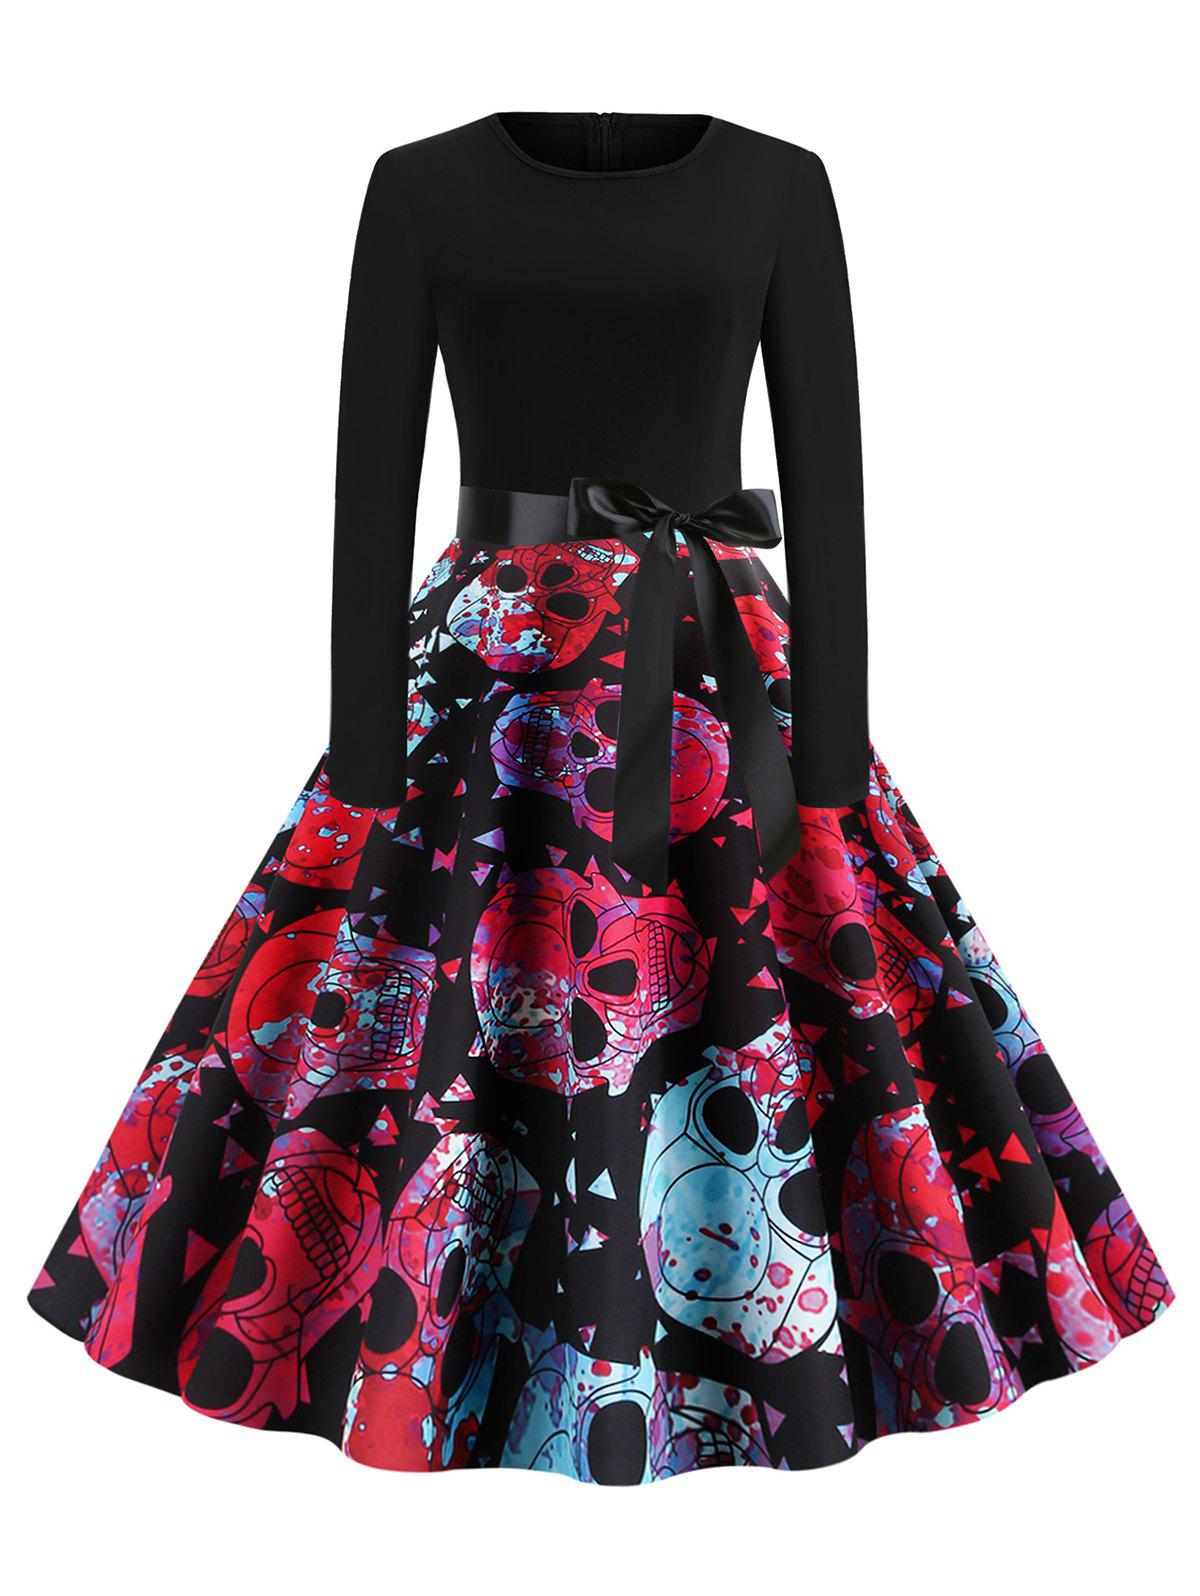 Chic Skull Floral Belted Round Neck Halloween Flare Dress